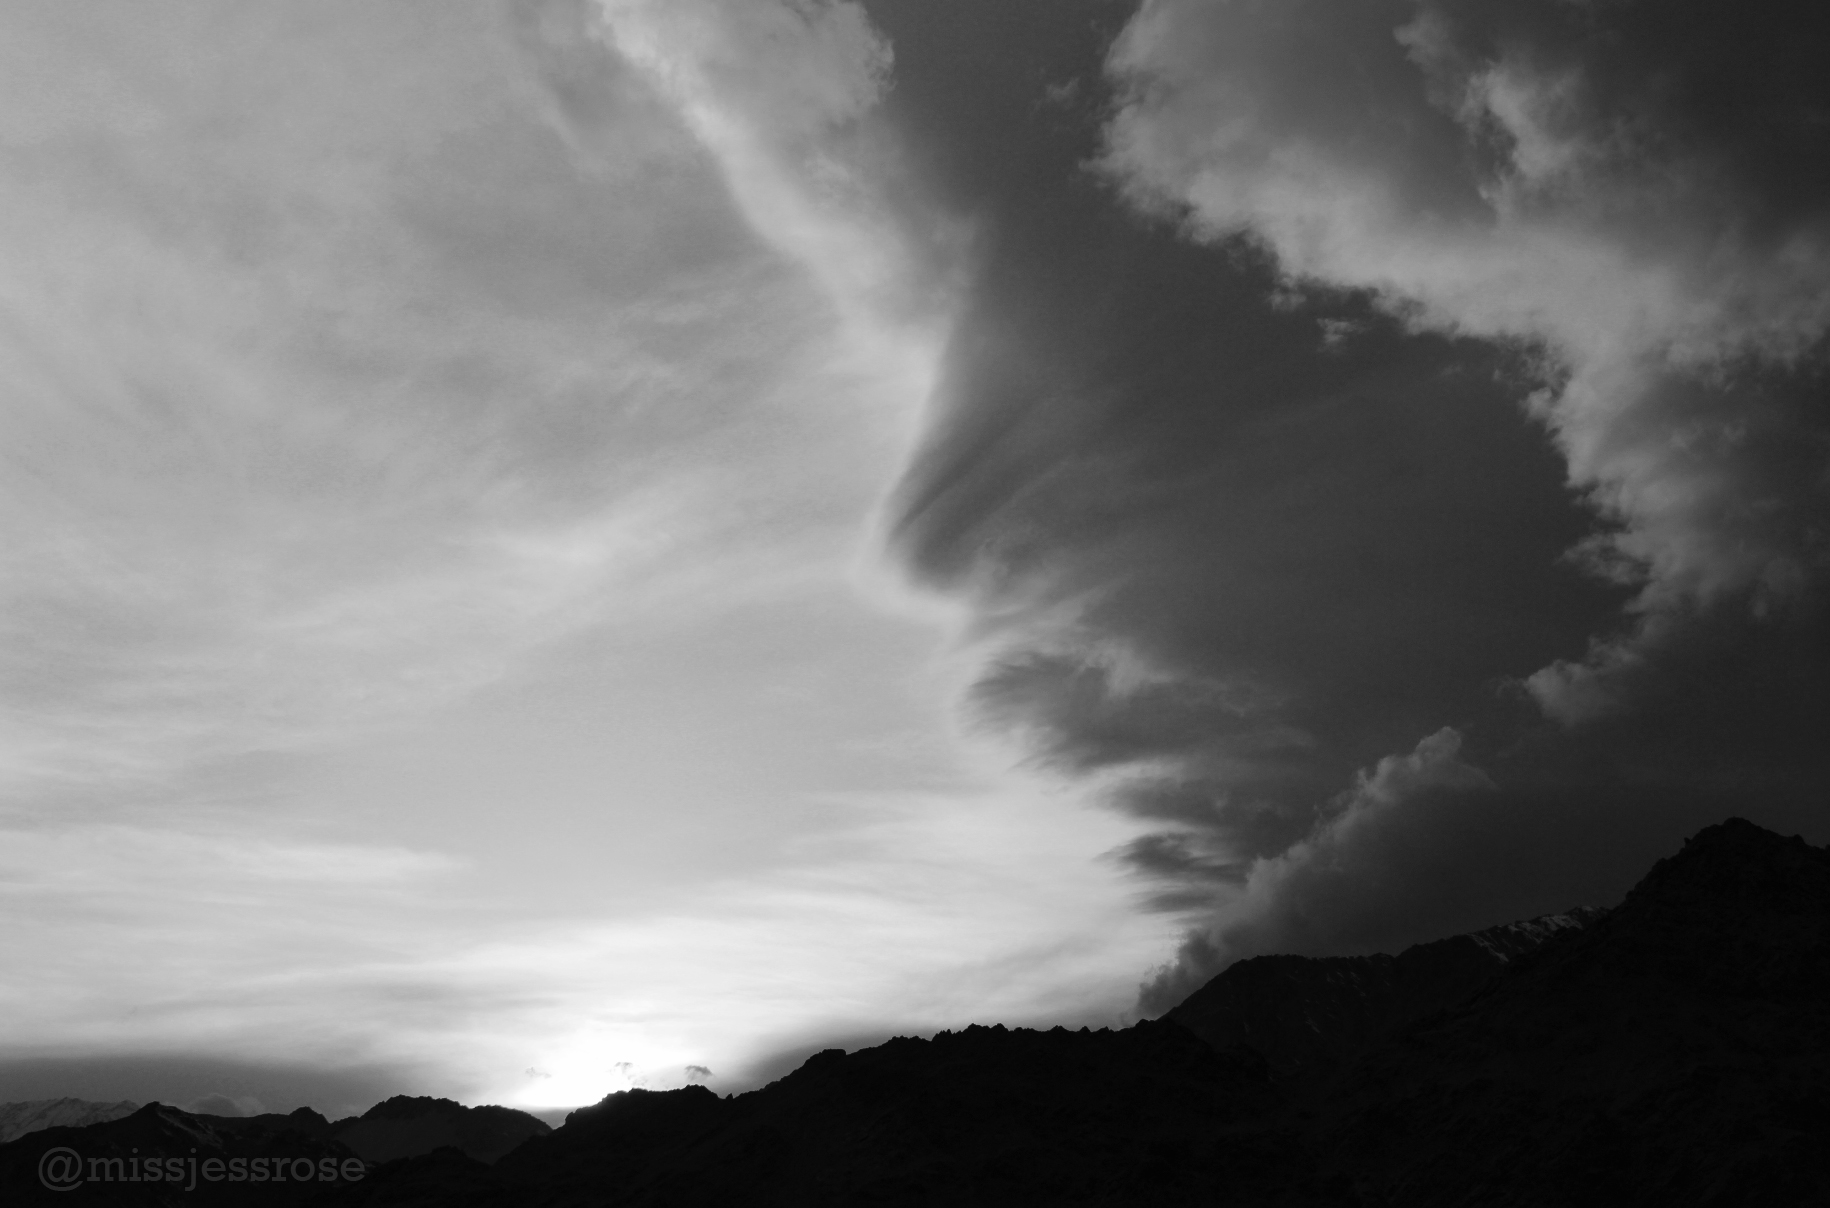 Dramatic clouds roll in as the sun begins to set behind the Himalayan Mountains.